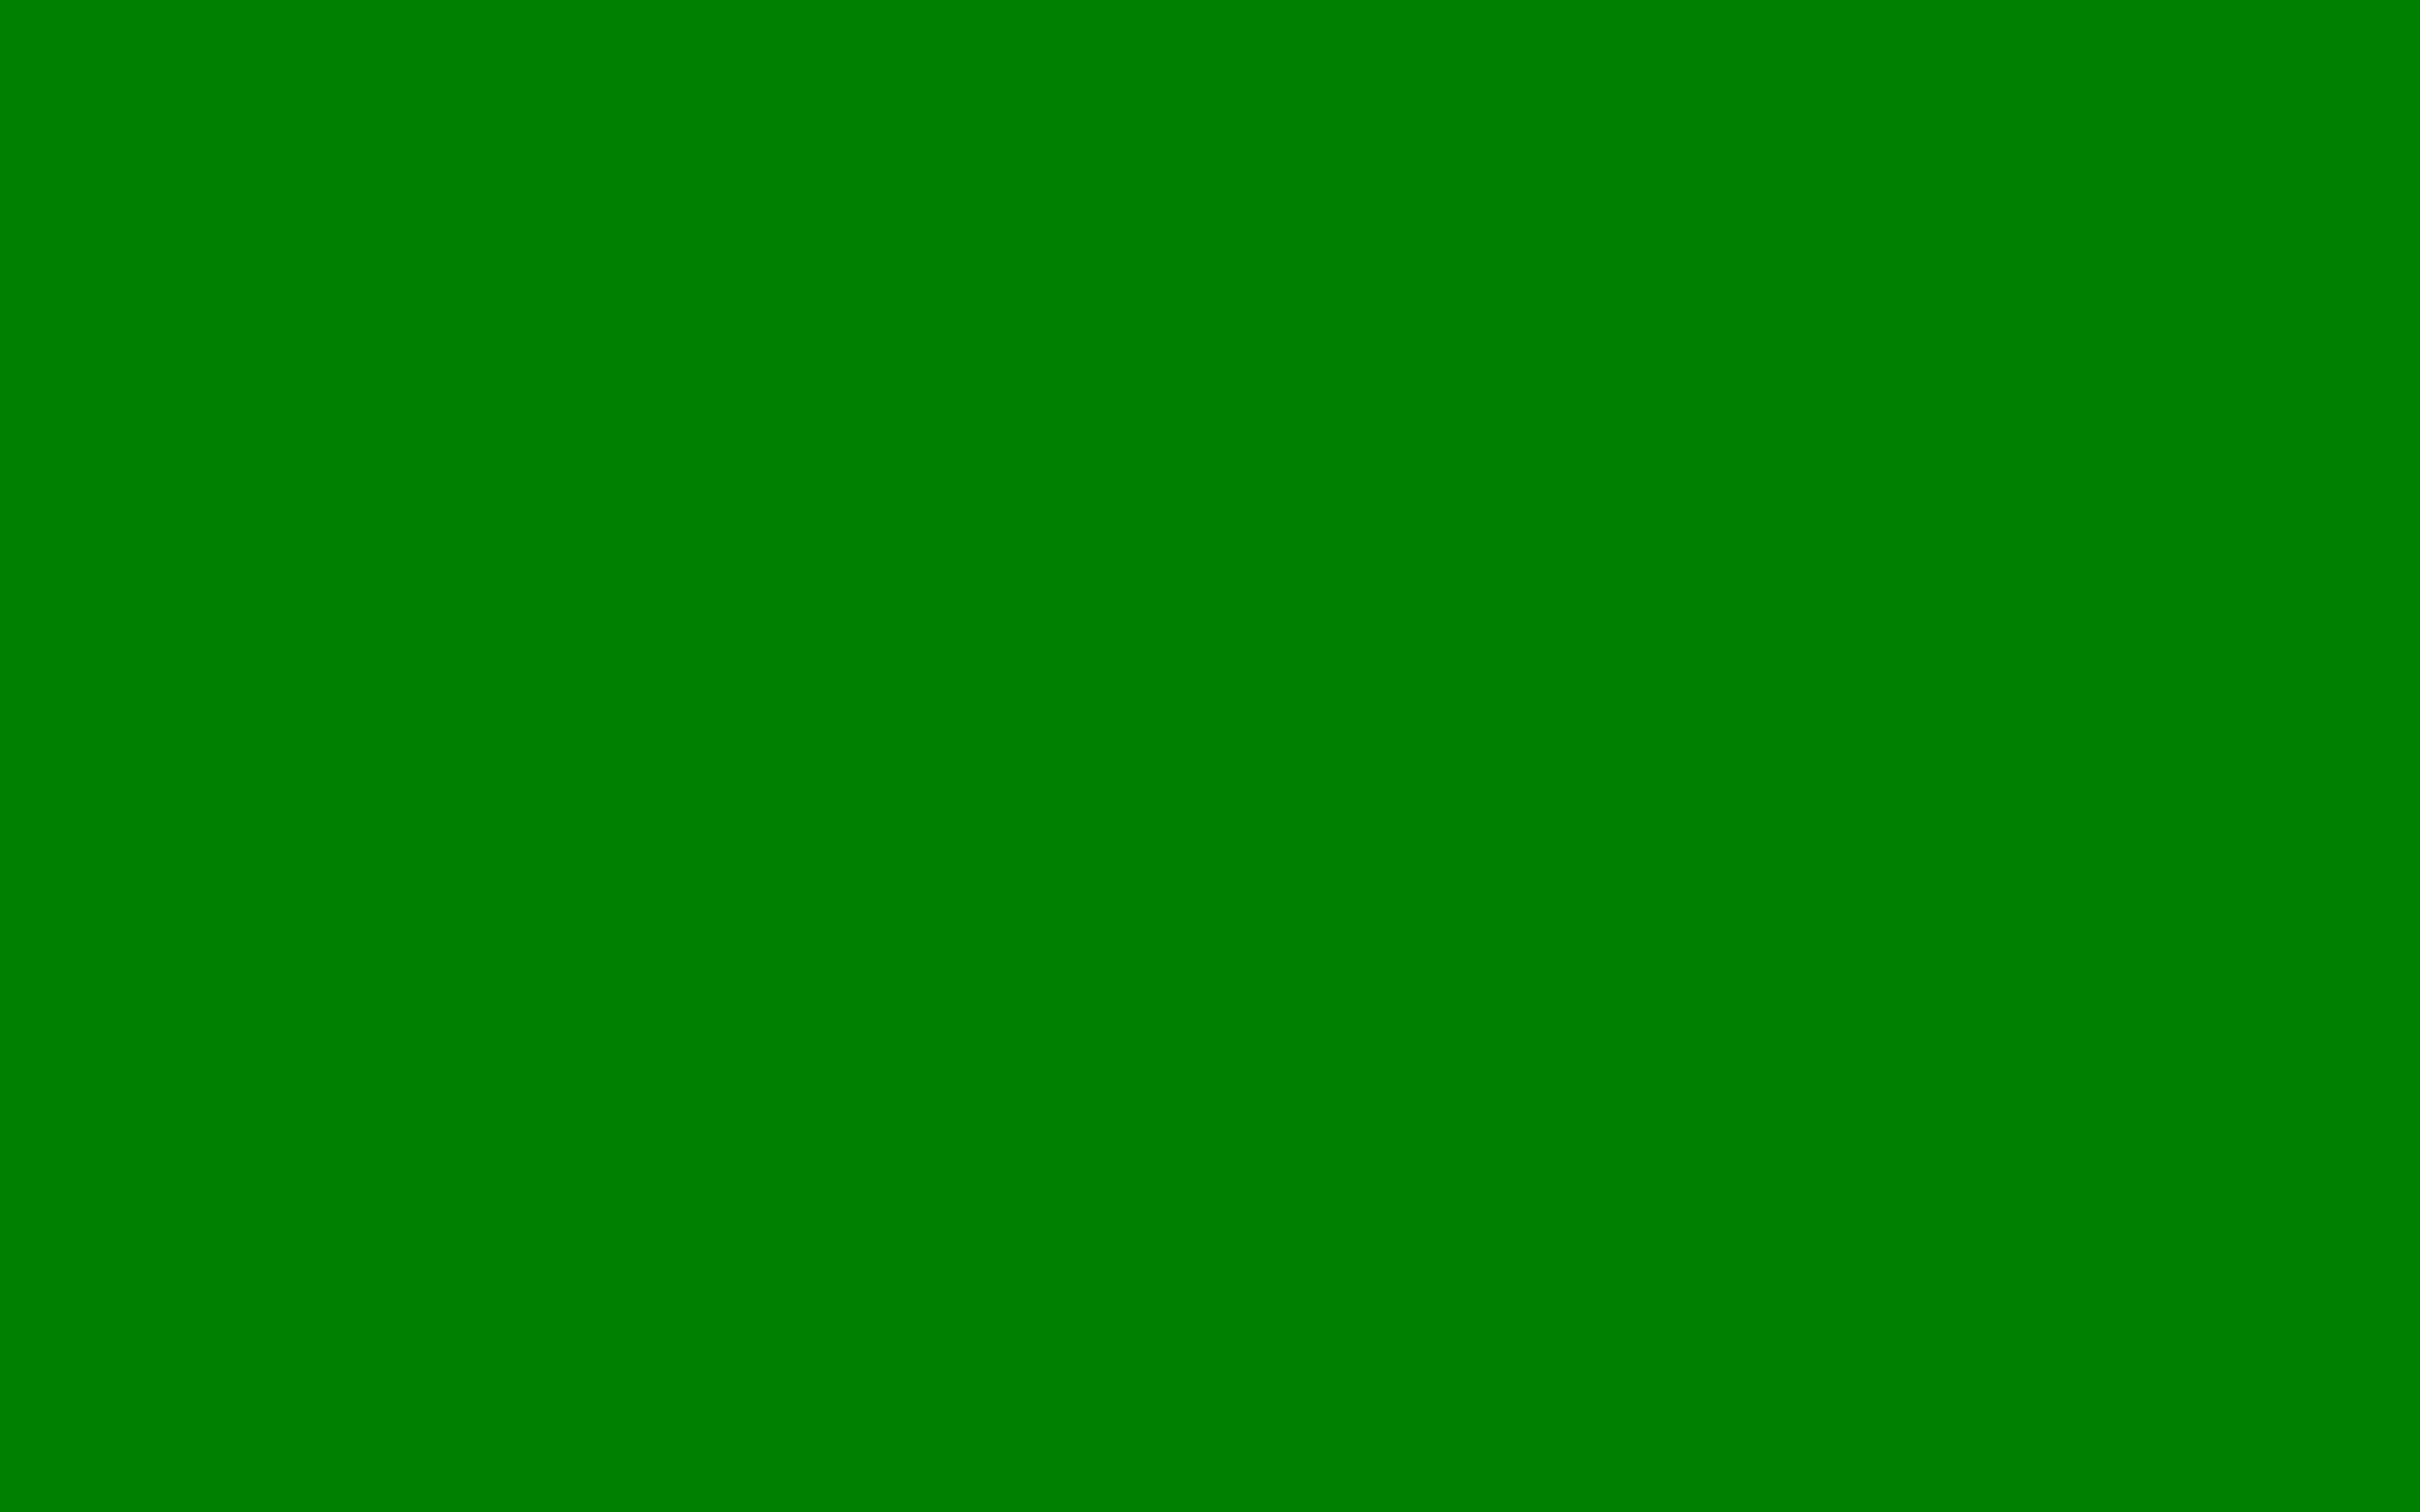 2560x1600 Office Green Solid Color Background